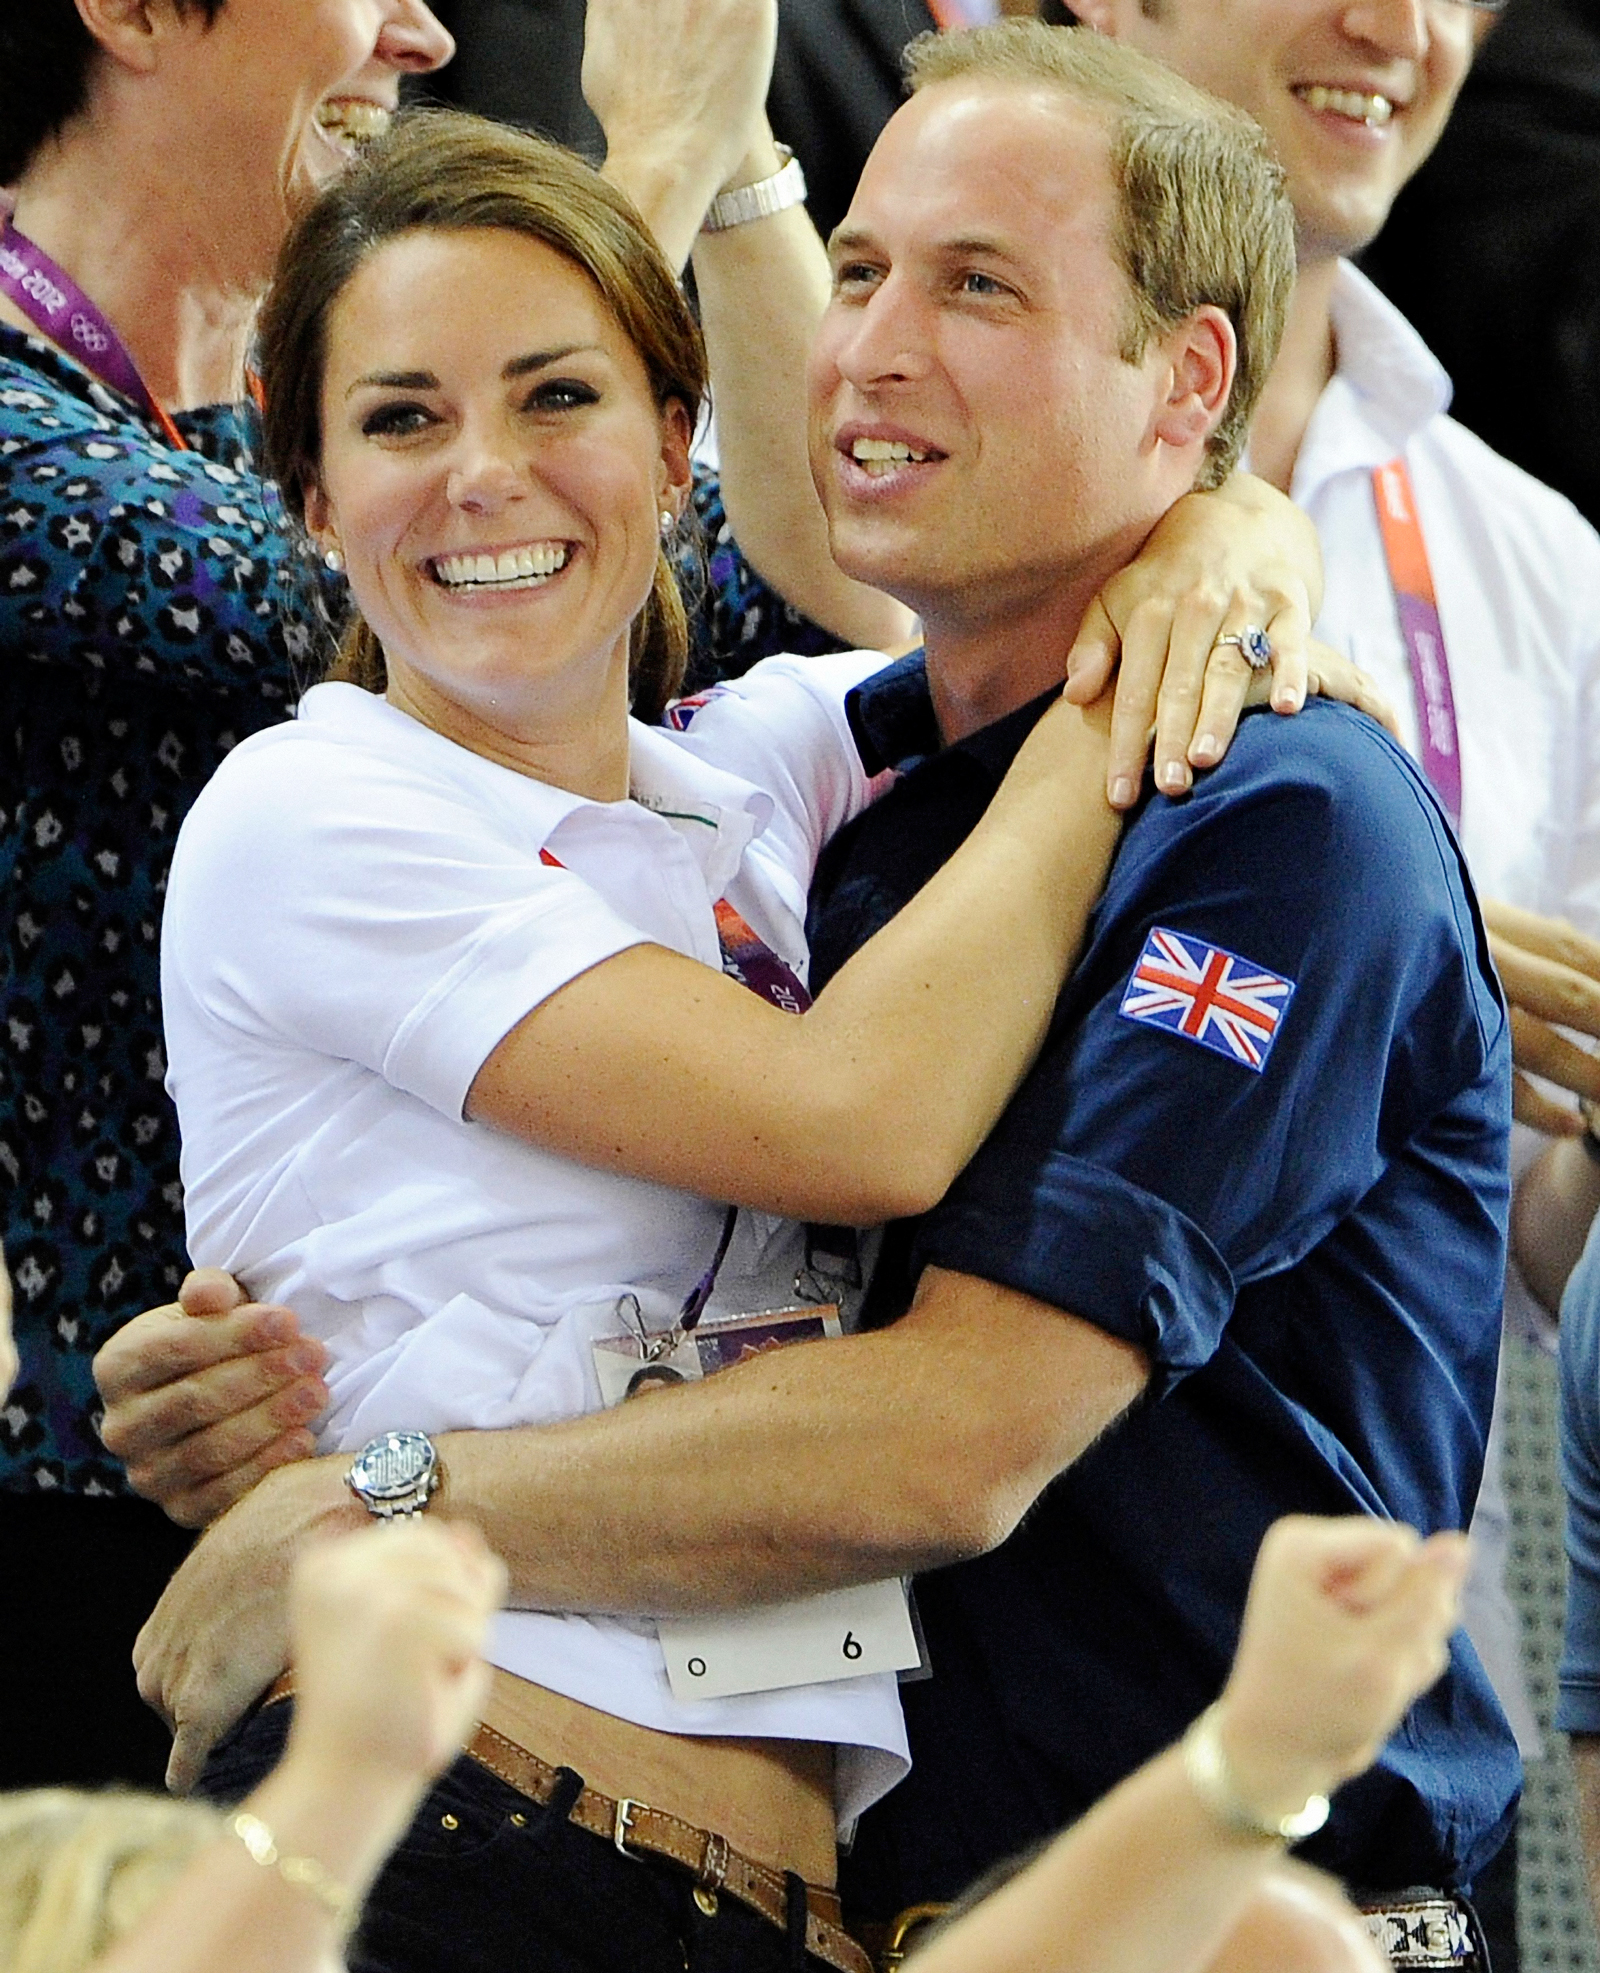 <p>Just a casual embrace during the Olympics. Nothing to see here. </p>